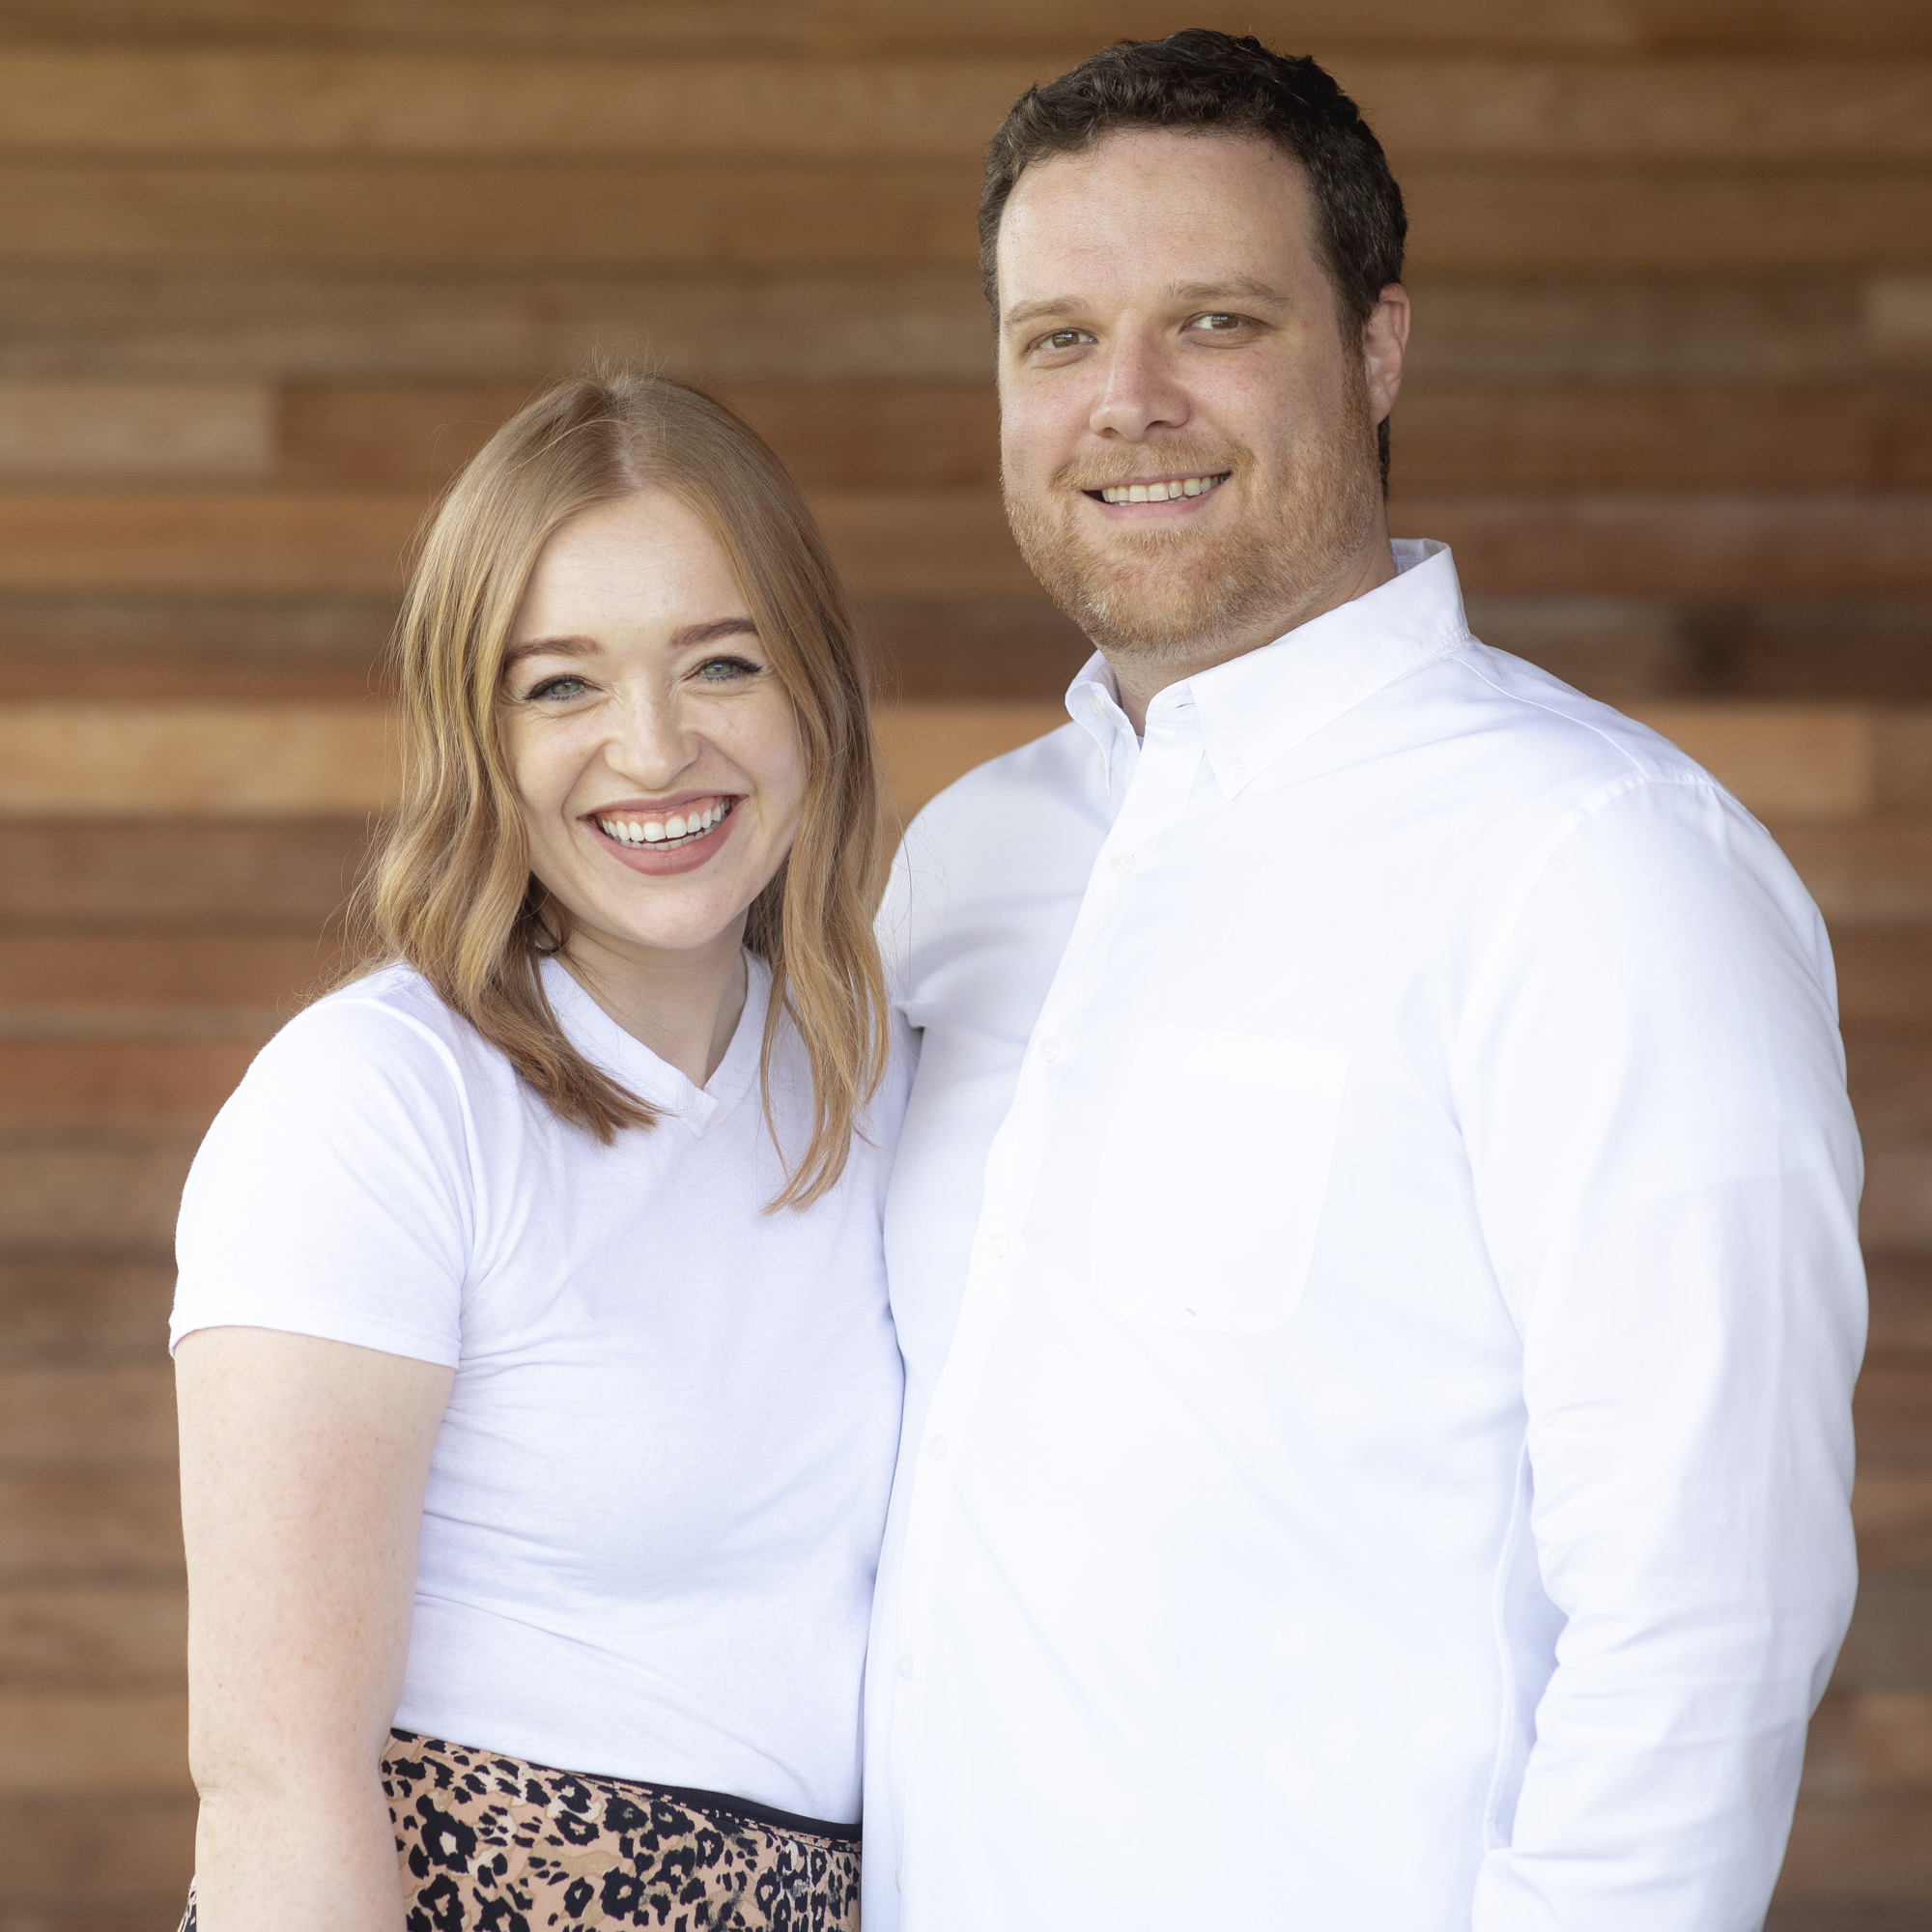 A man and a woman stand side-by-side posing for a picture wearing white shirts